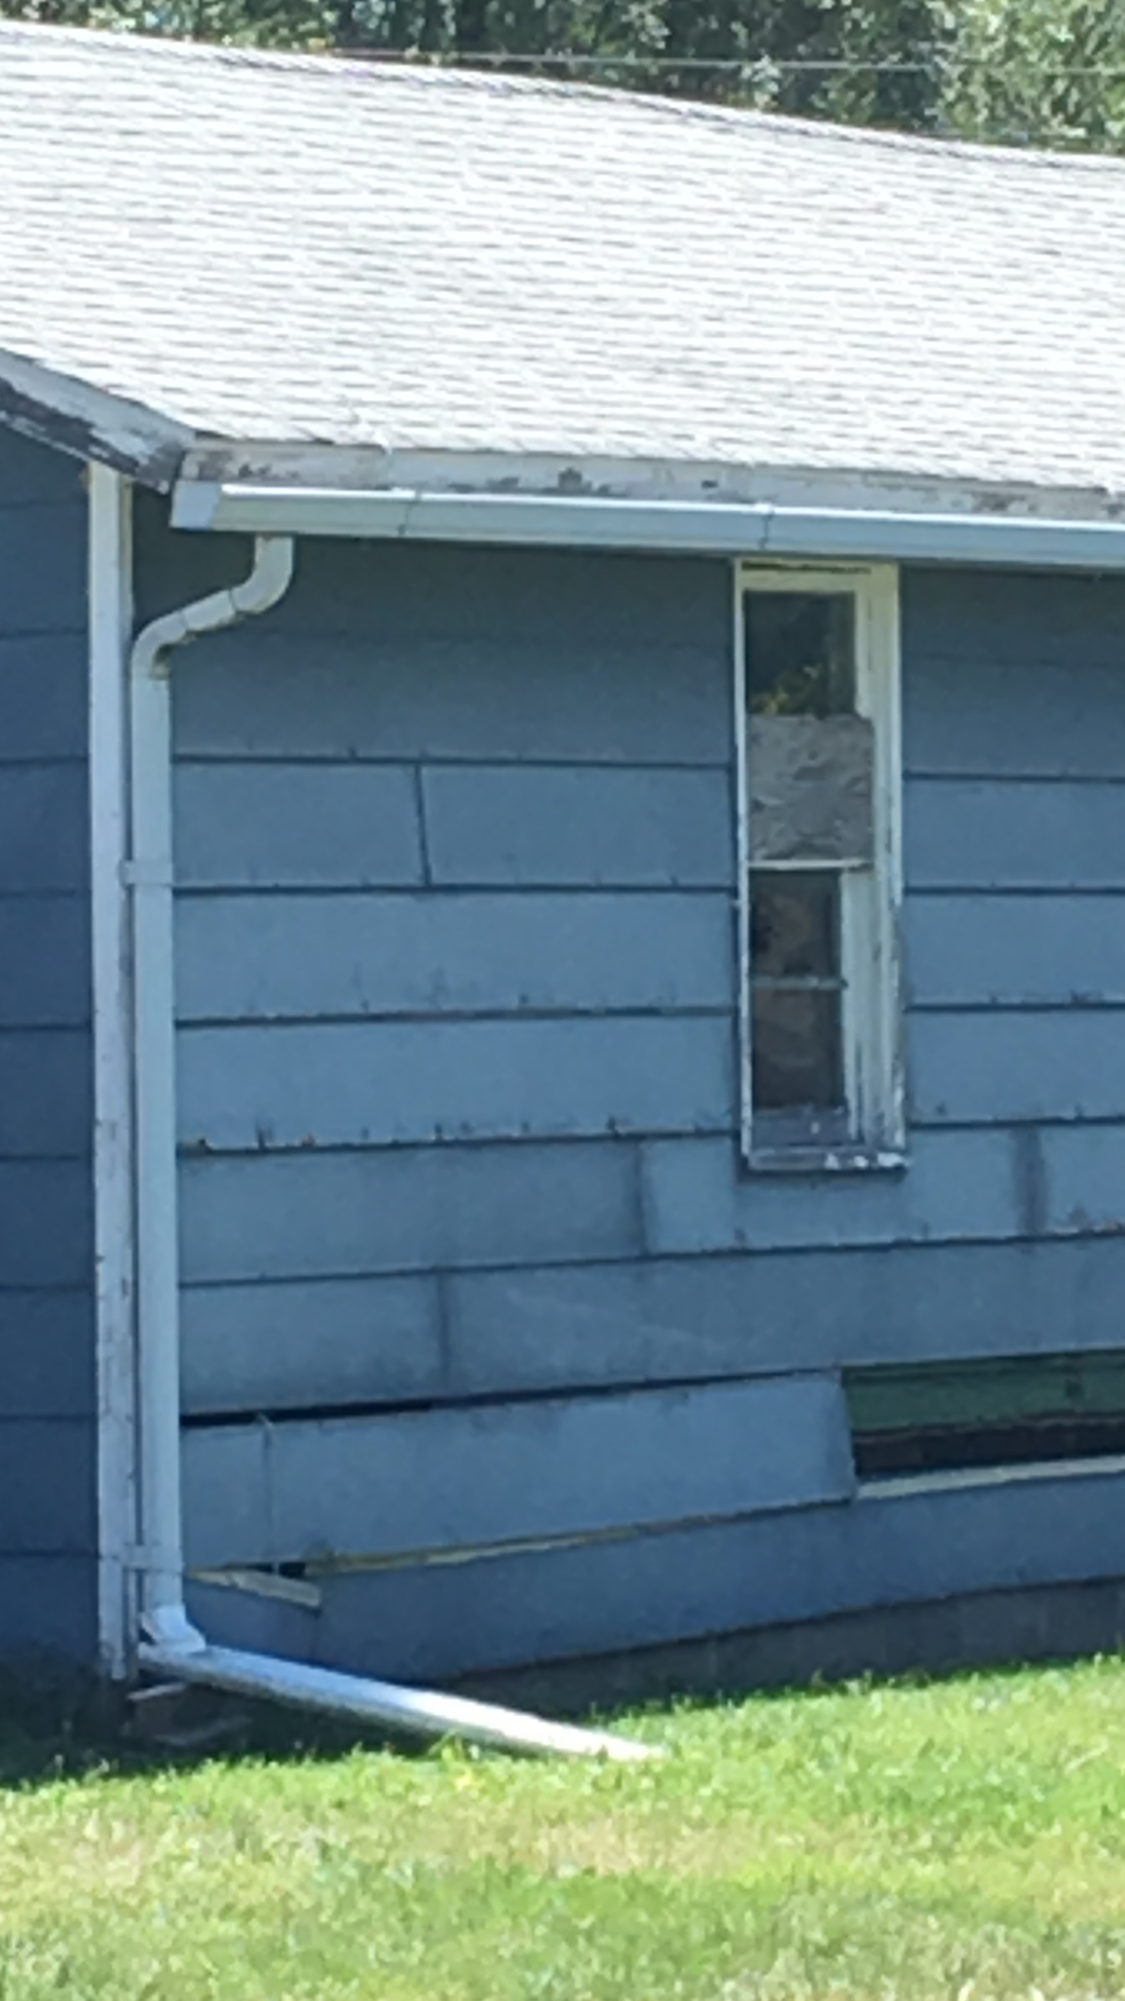 Kirksville police are trying to determine if the shot fired through this window of a local conservation agent's home was an accident or intentional. (John Garlock/KTVO)